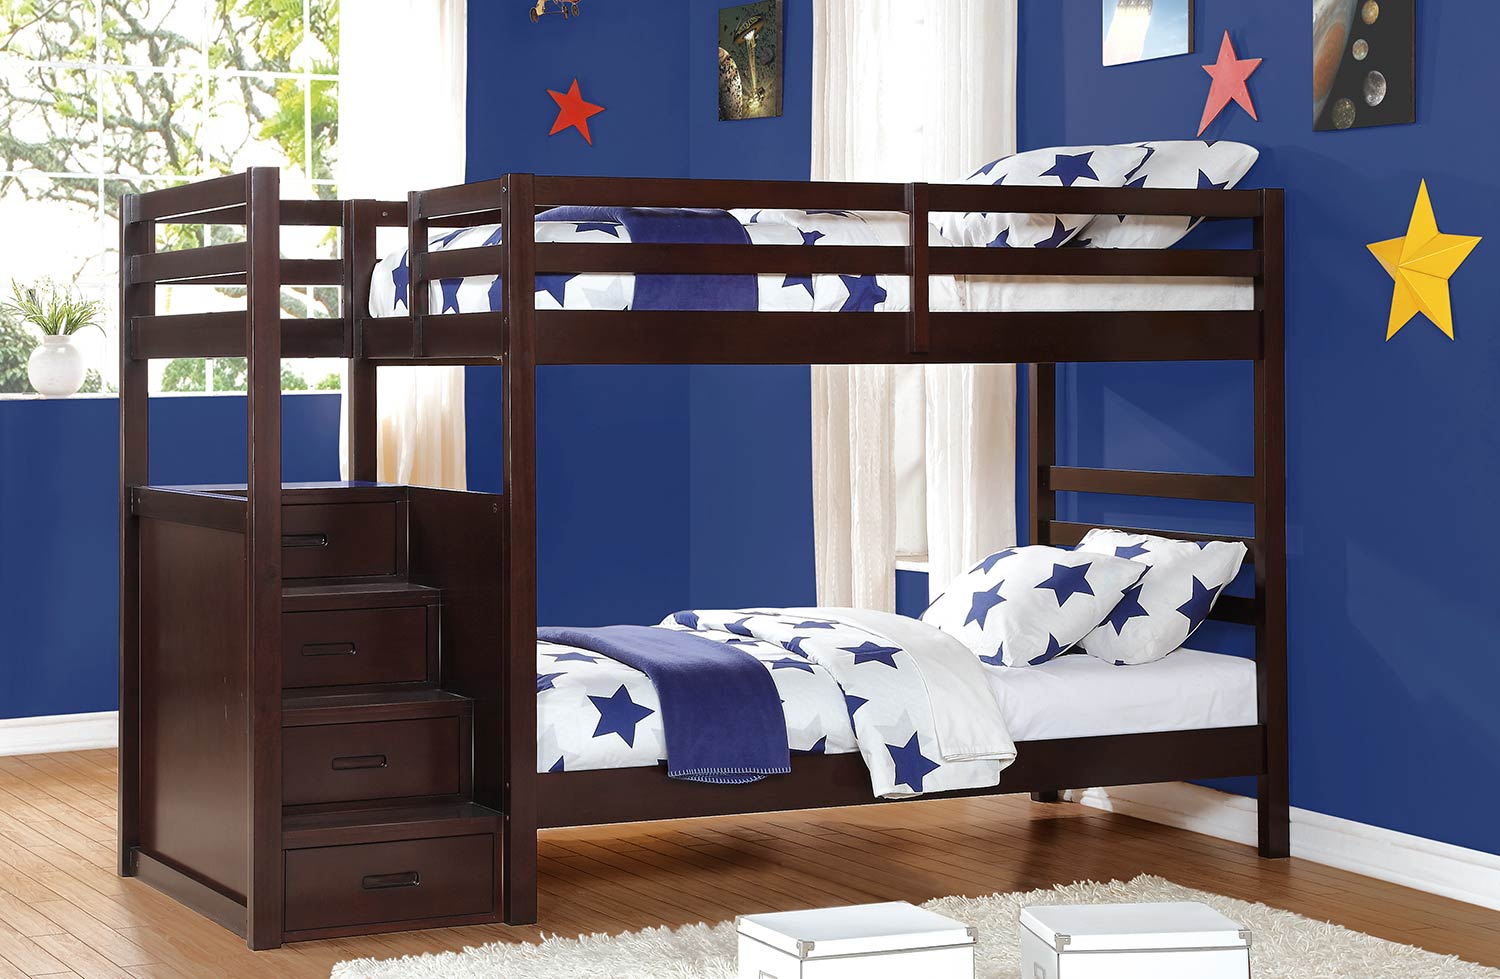 Homelegance Atlas Bunk Bed with Step Storages - Dark Cherry